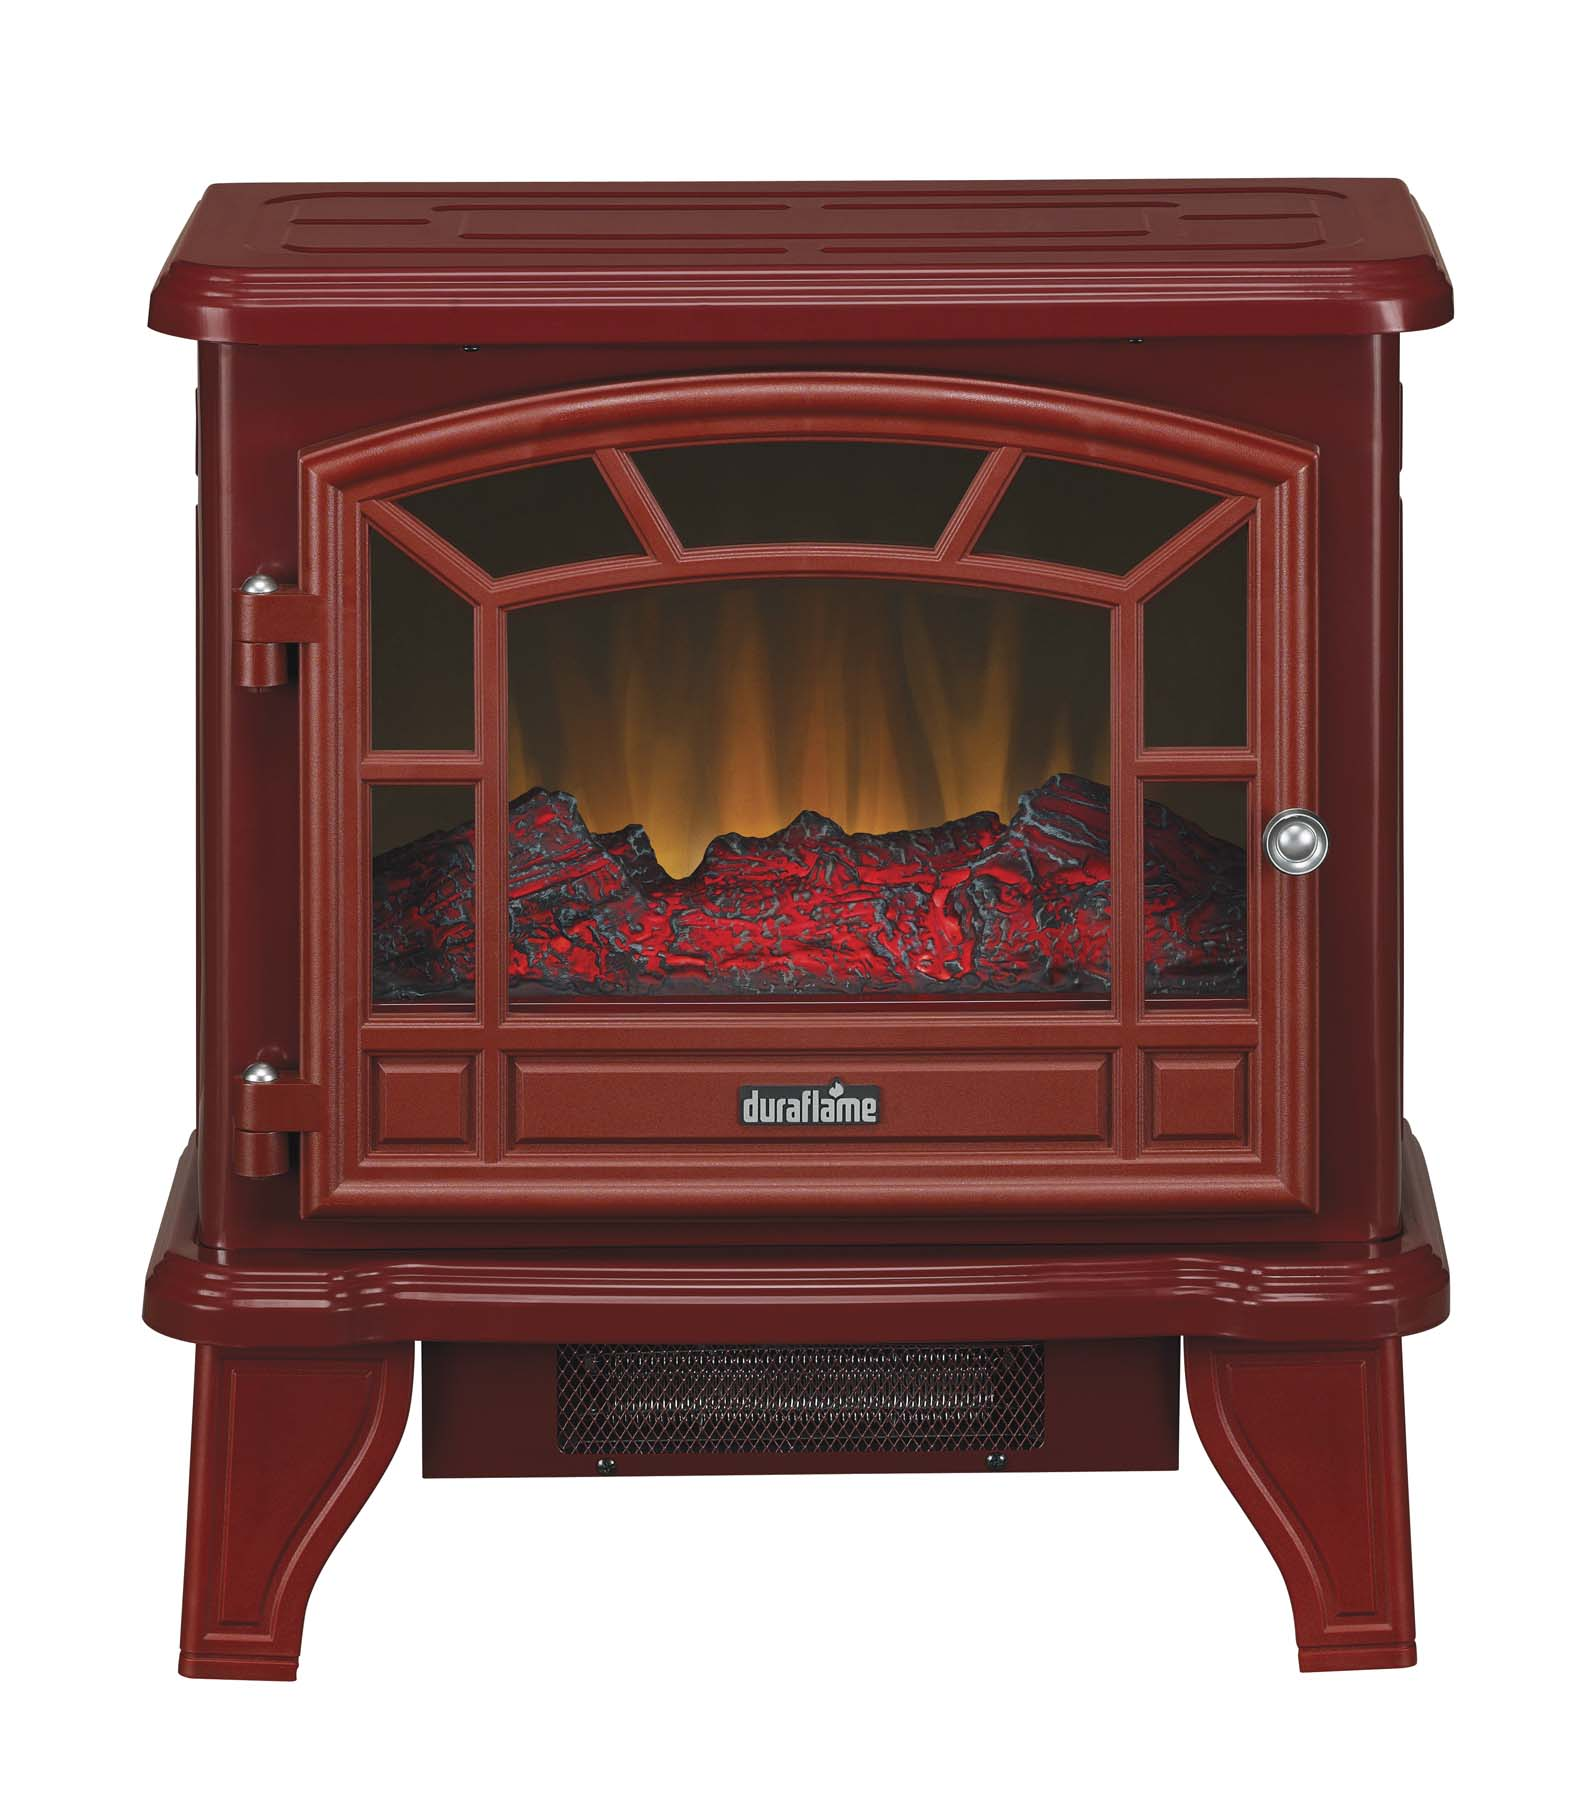 20 39 39 Duraflame Red Stove Electric Fireplace